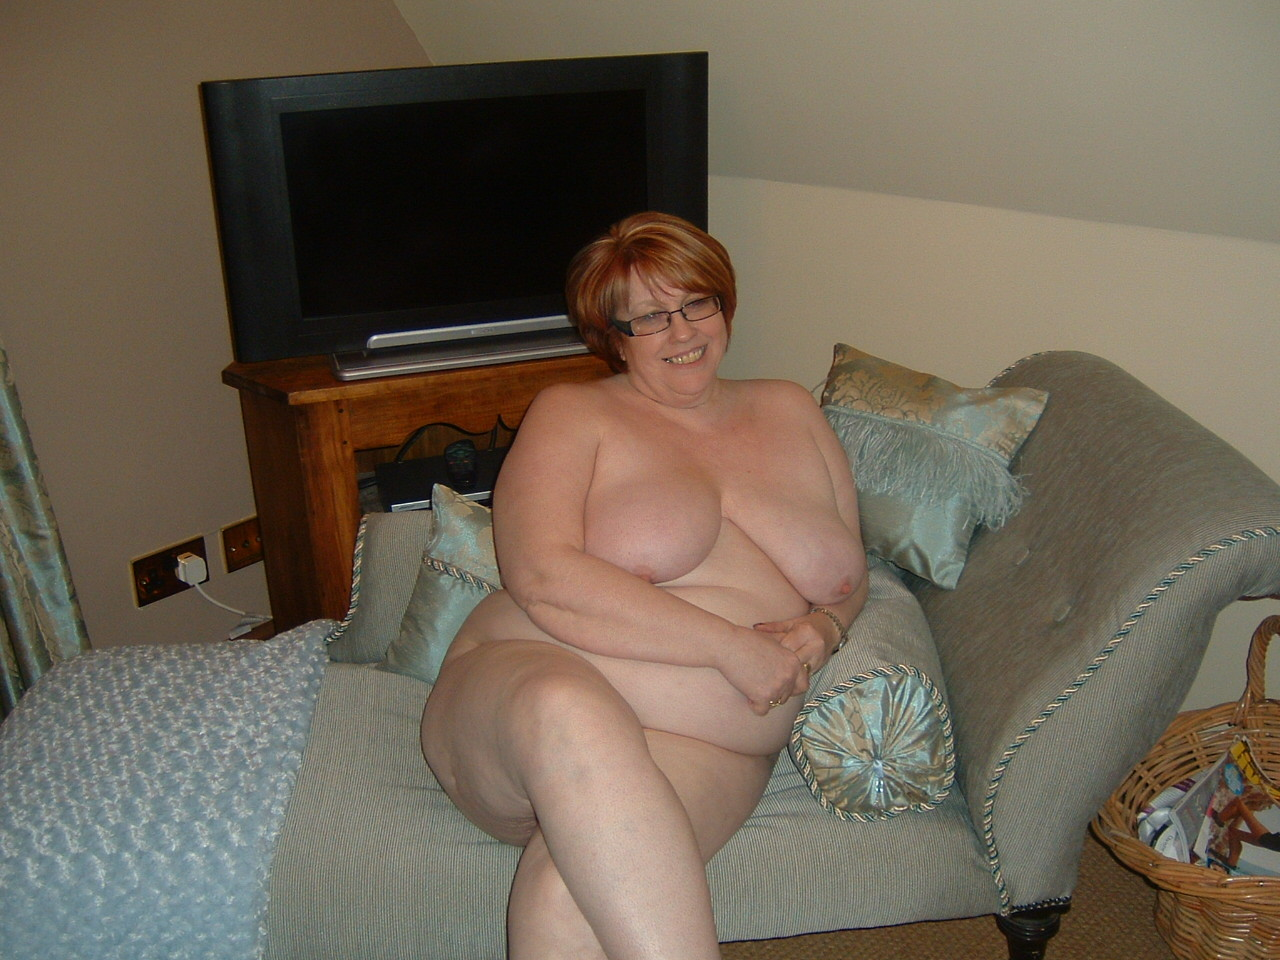 hottest chubby hubby new porn